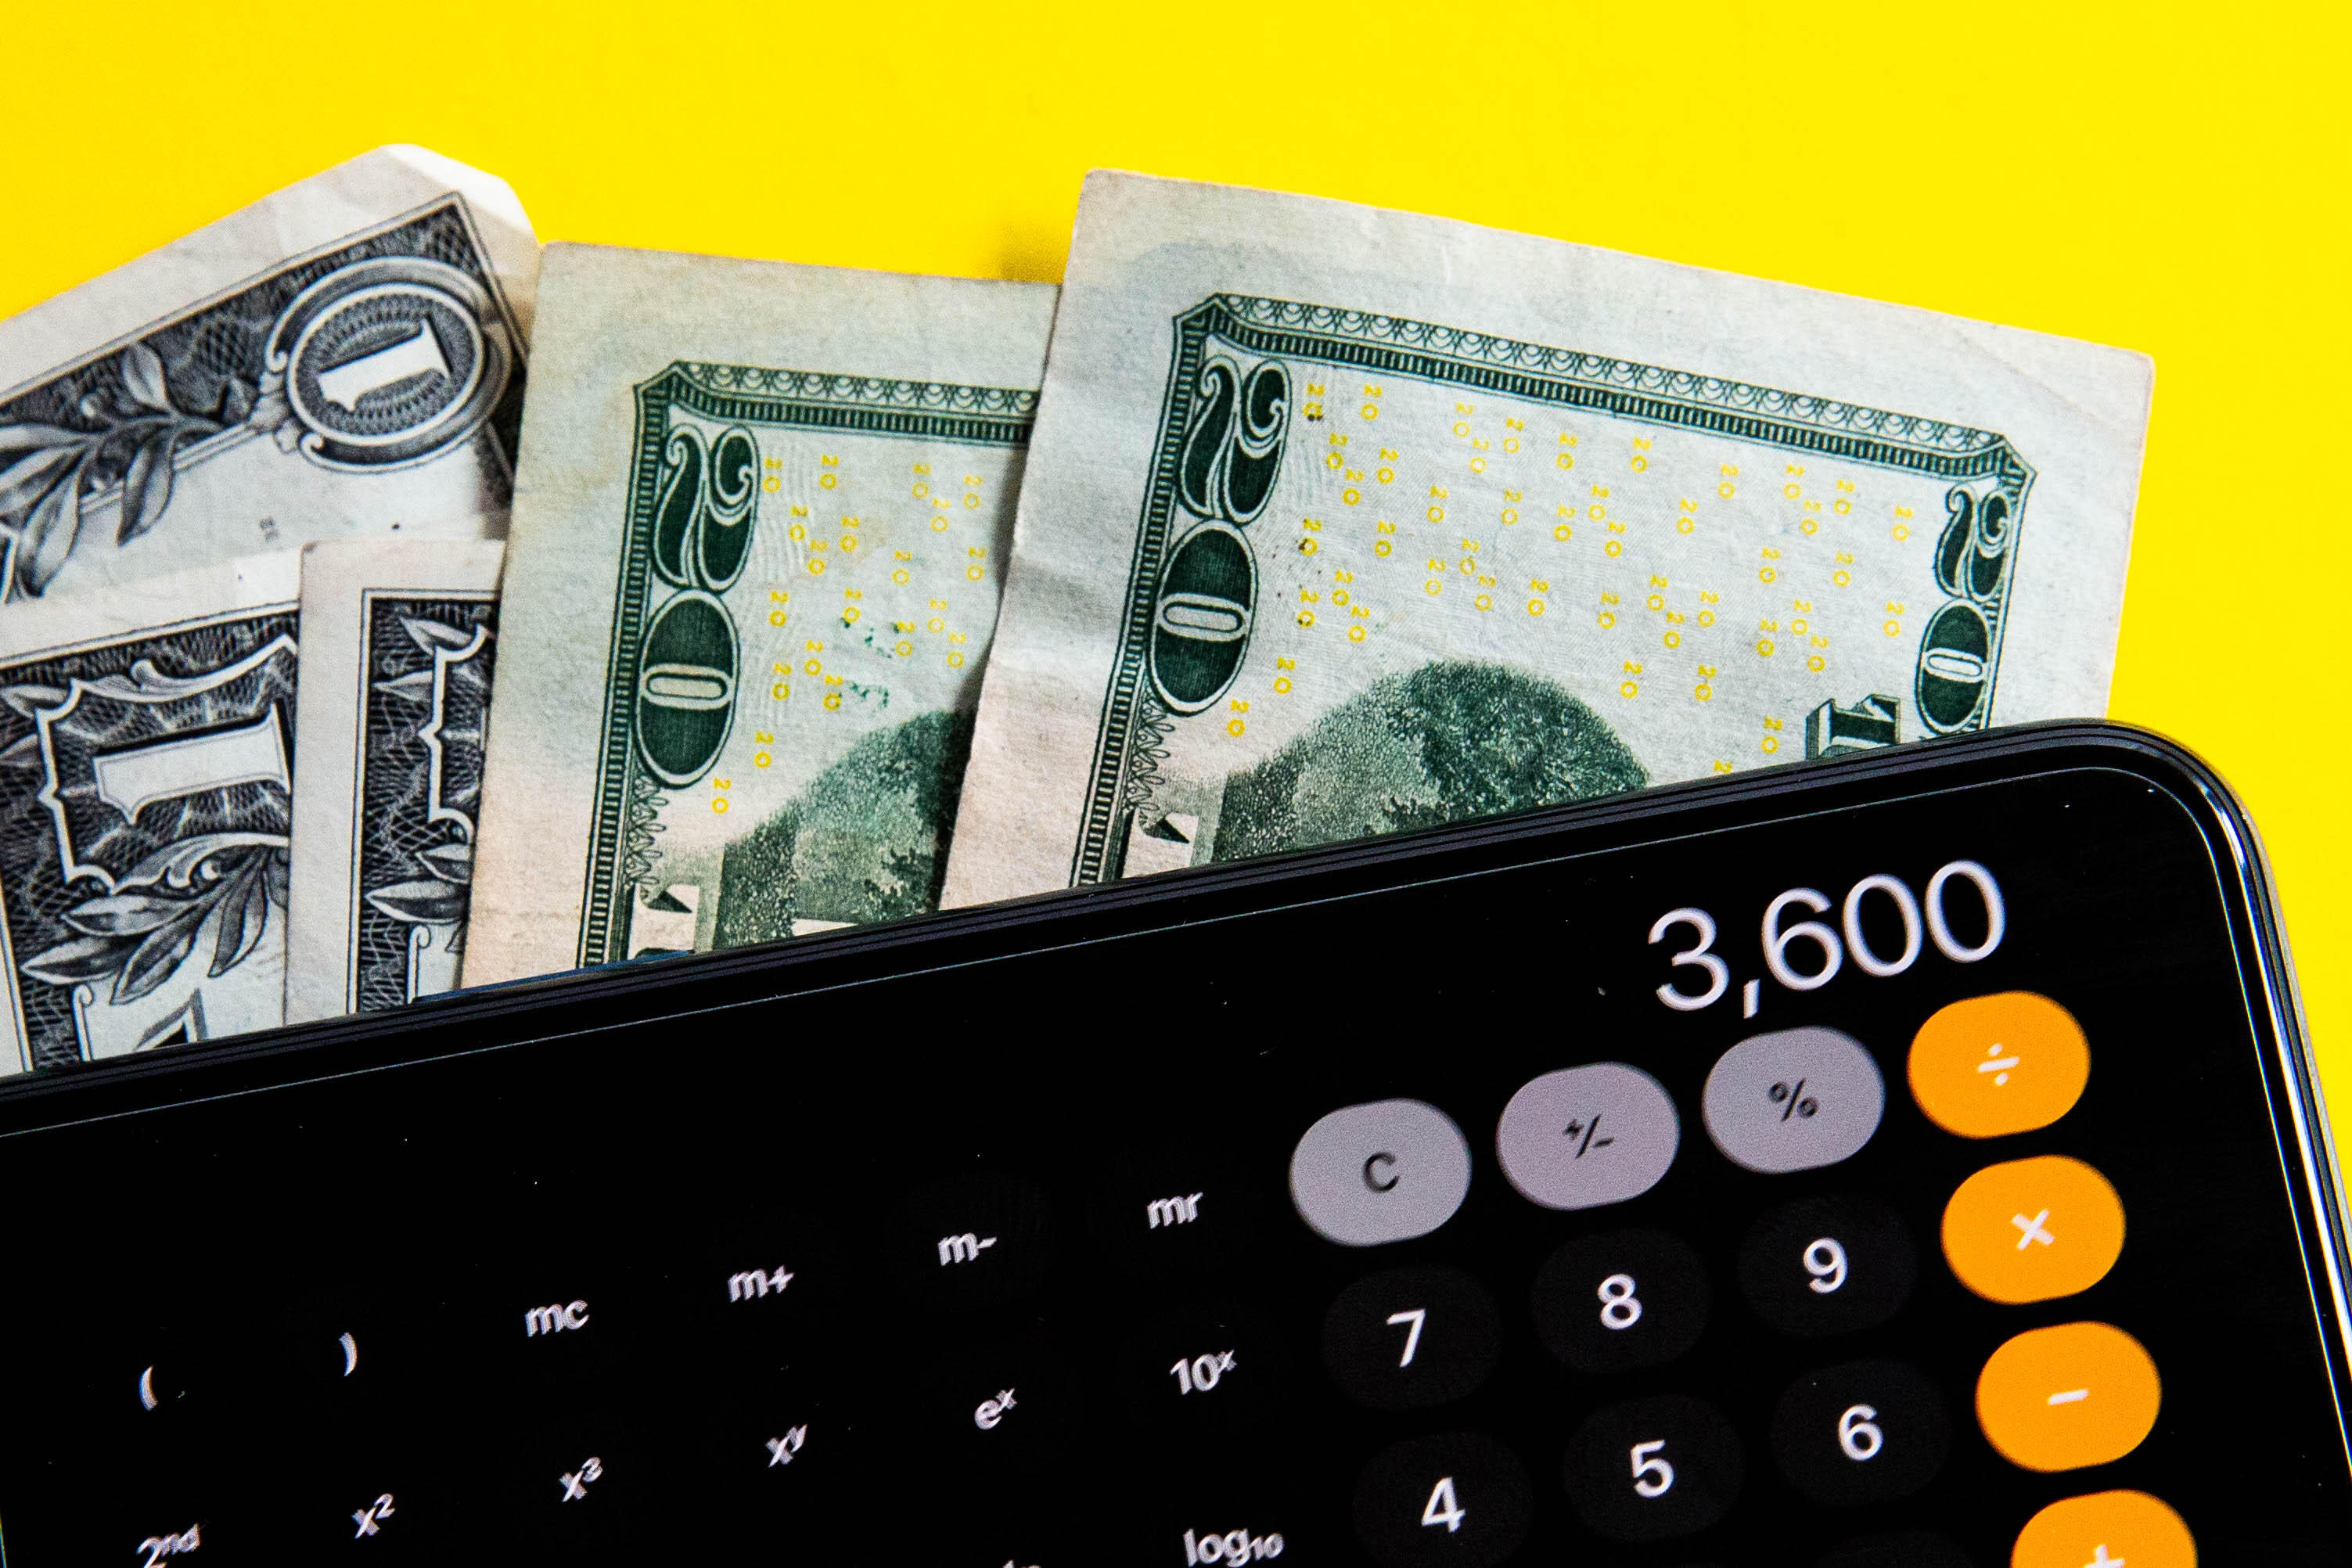 002-cash-money-up-to-$ 3,600-child-tax-credit-calculator-stimulus-federal-bill-tax